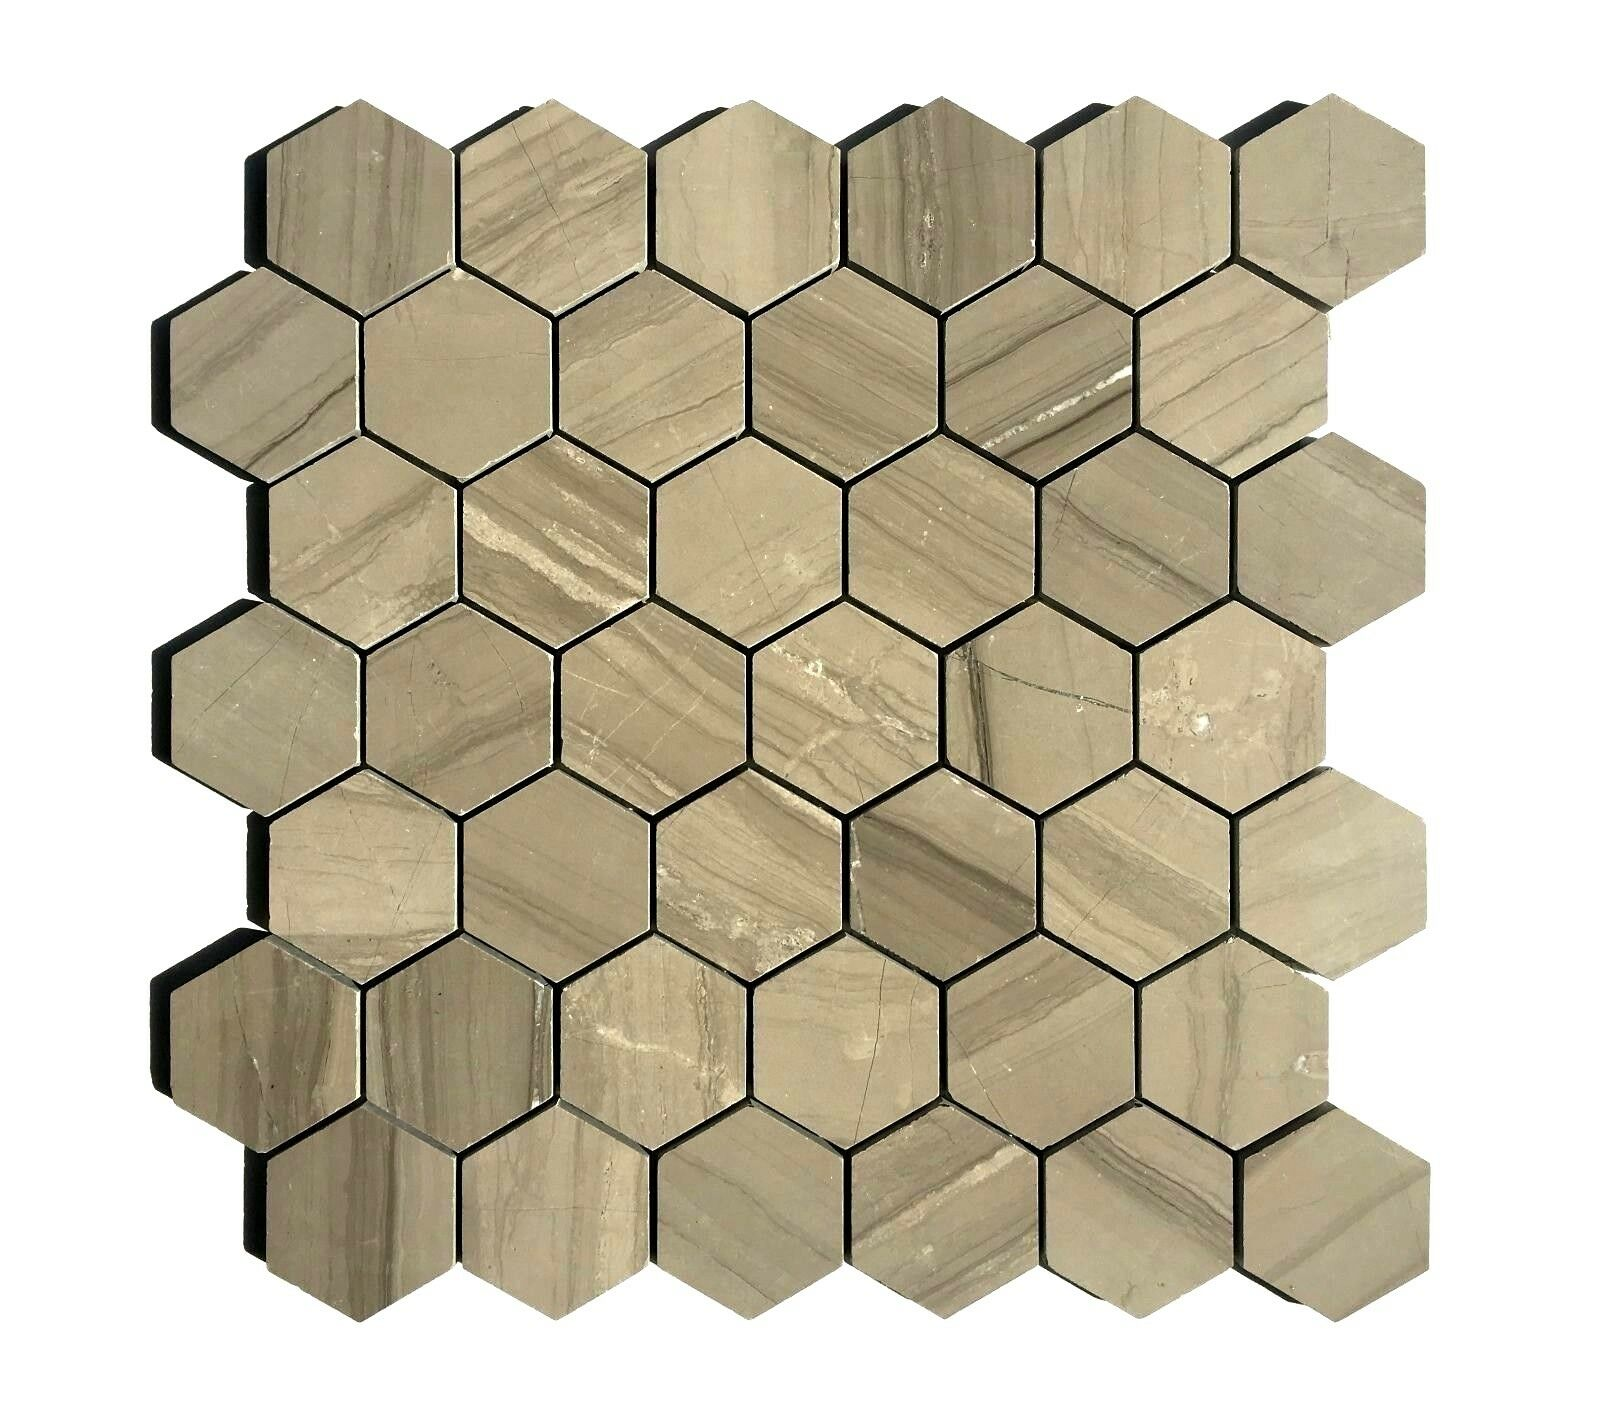 Athens Gray 2 Hexagon Marble Mosaic Wall And Floor Tile Backsplash Kitchen Bath For Sale Online